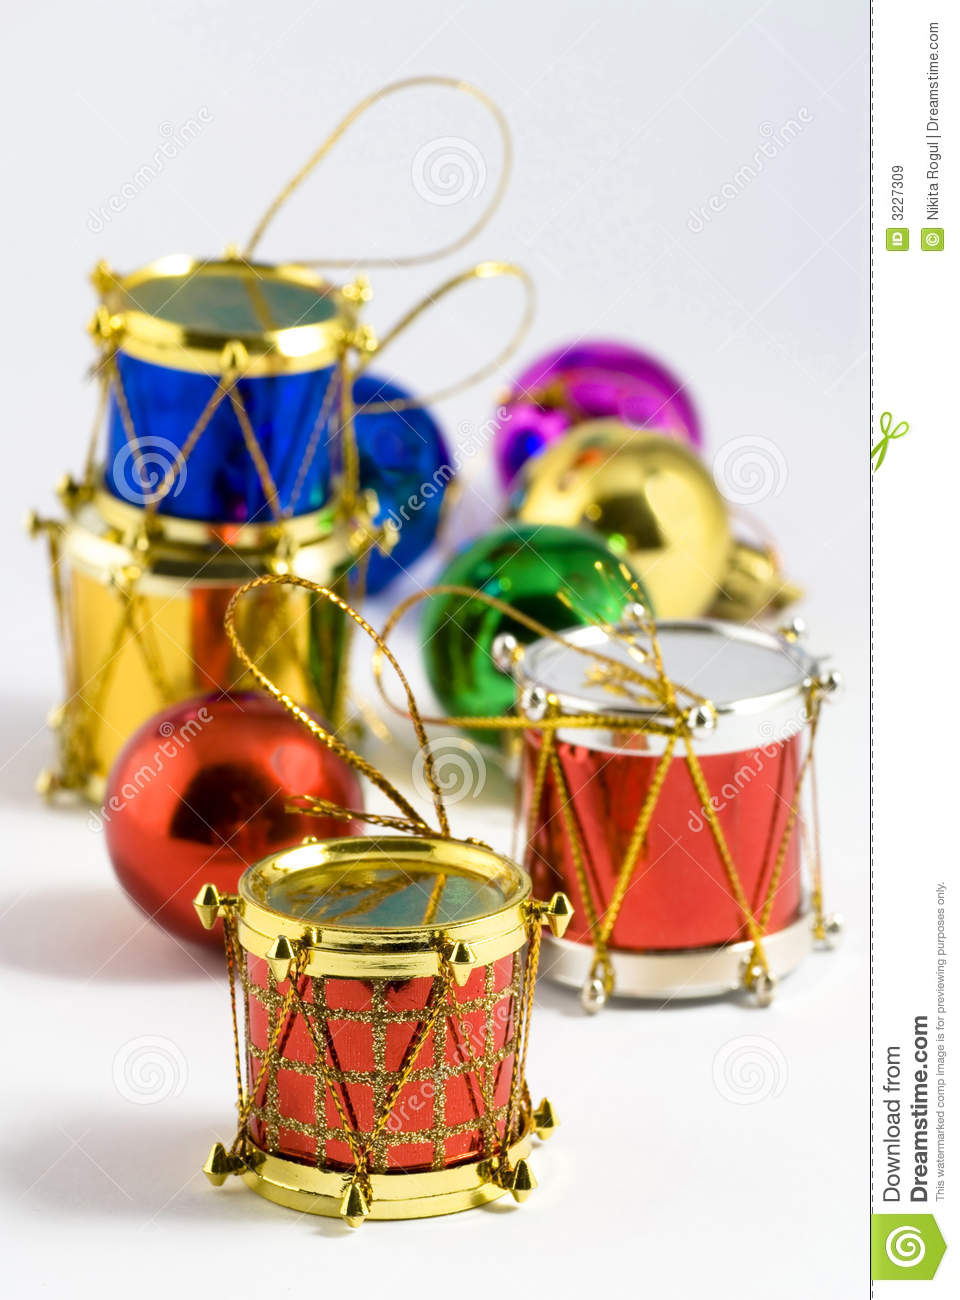 Several colorful christmas tree decorations of different types.